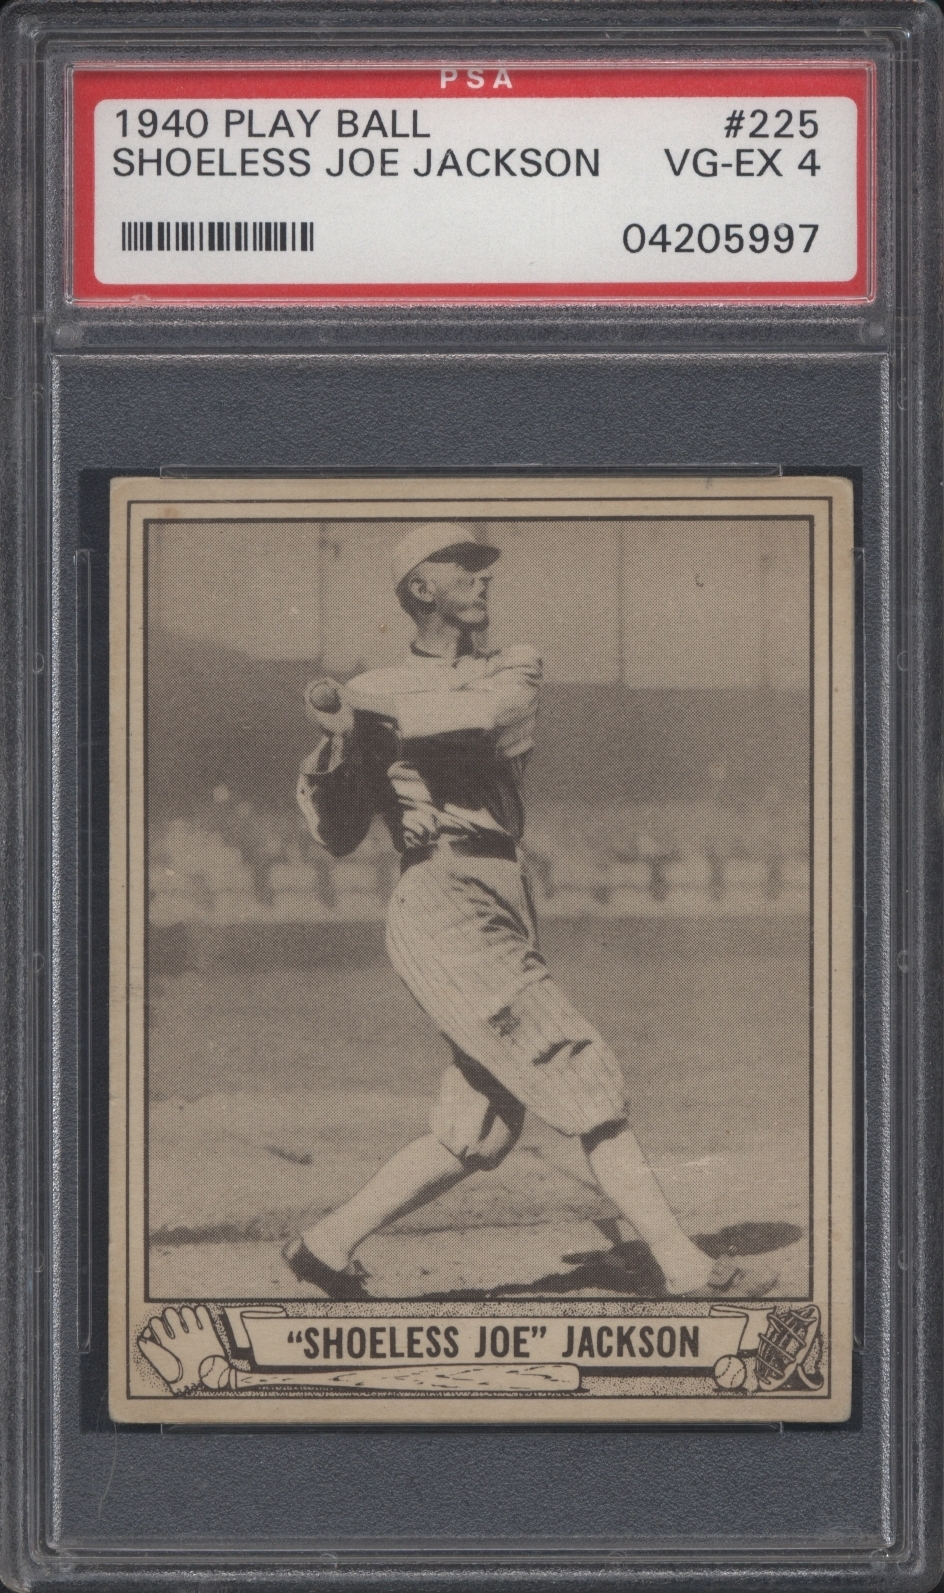 1940 Play Ball Shoeless Joe Jackson